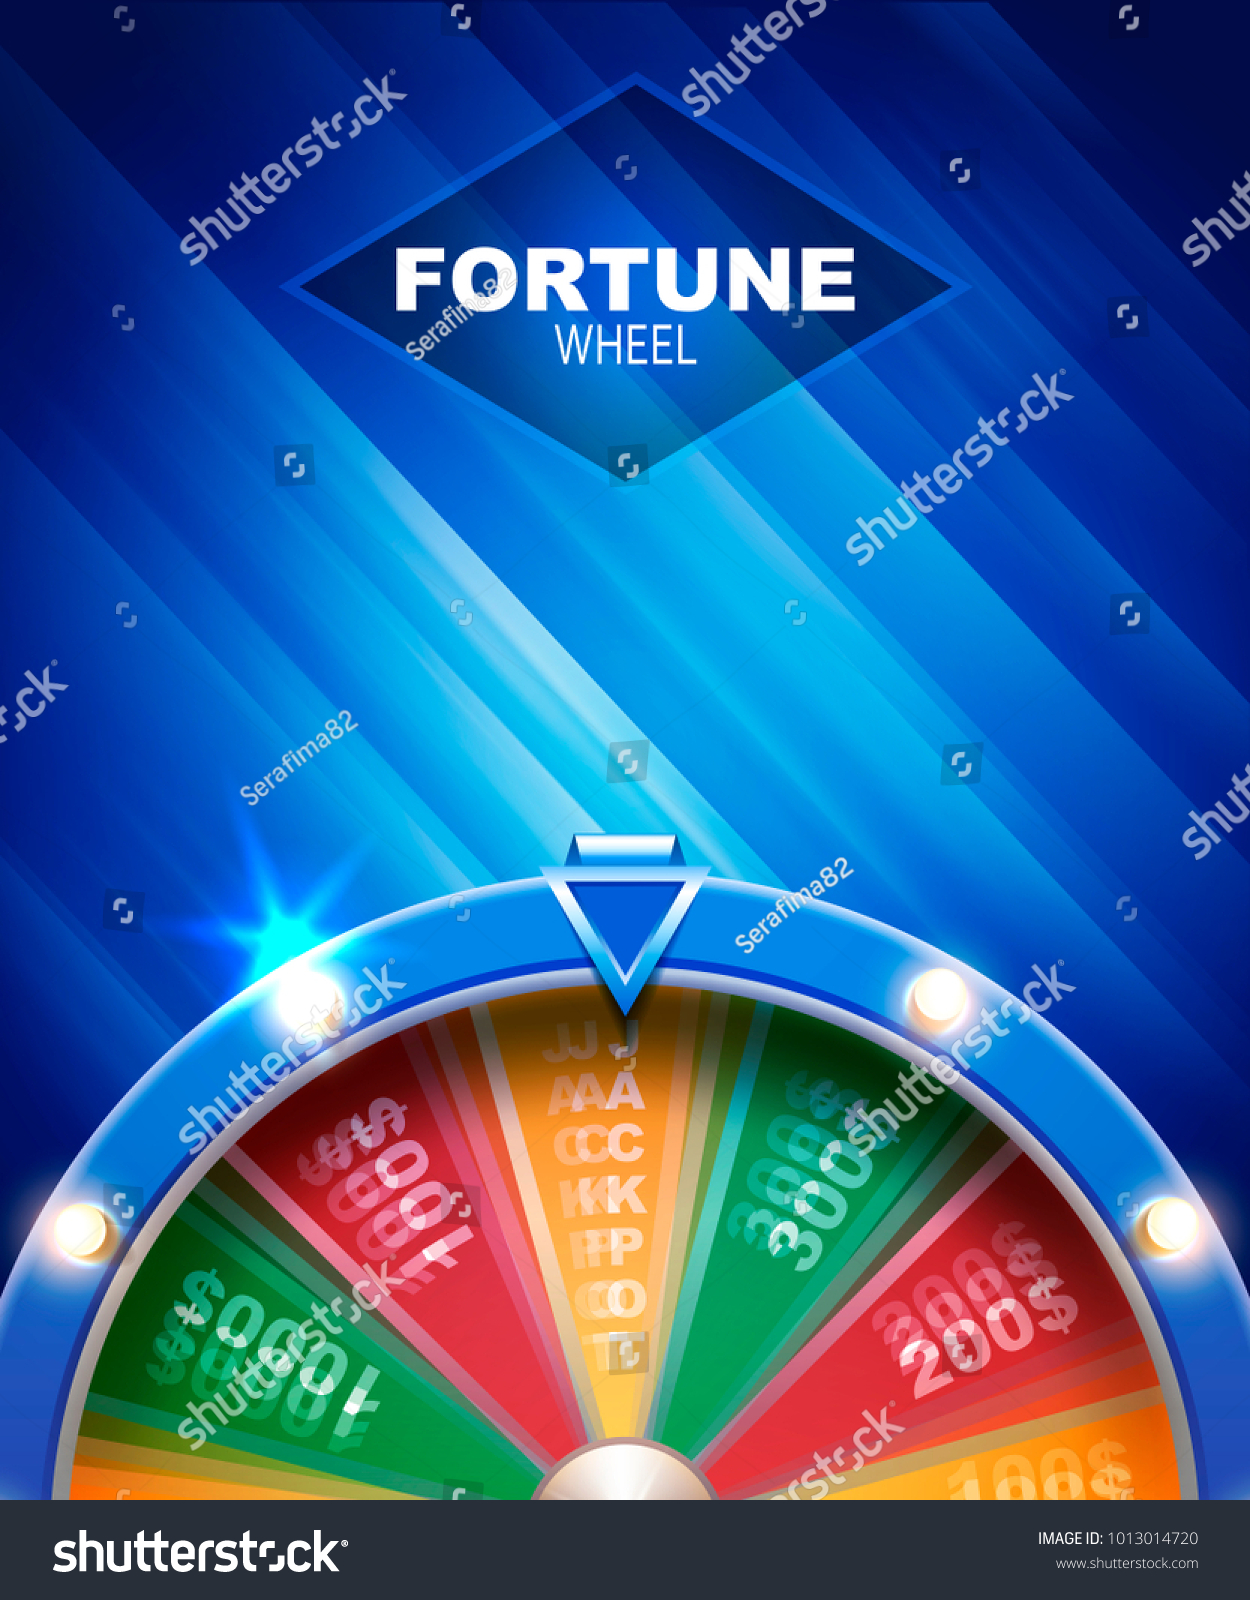 Wheel Fortune Gambling Background Stock Vector Royalty Free 1013014720